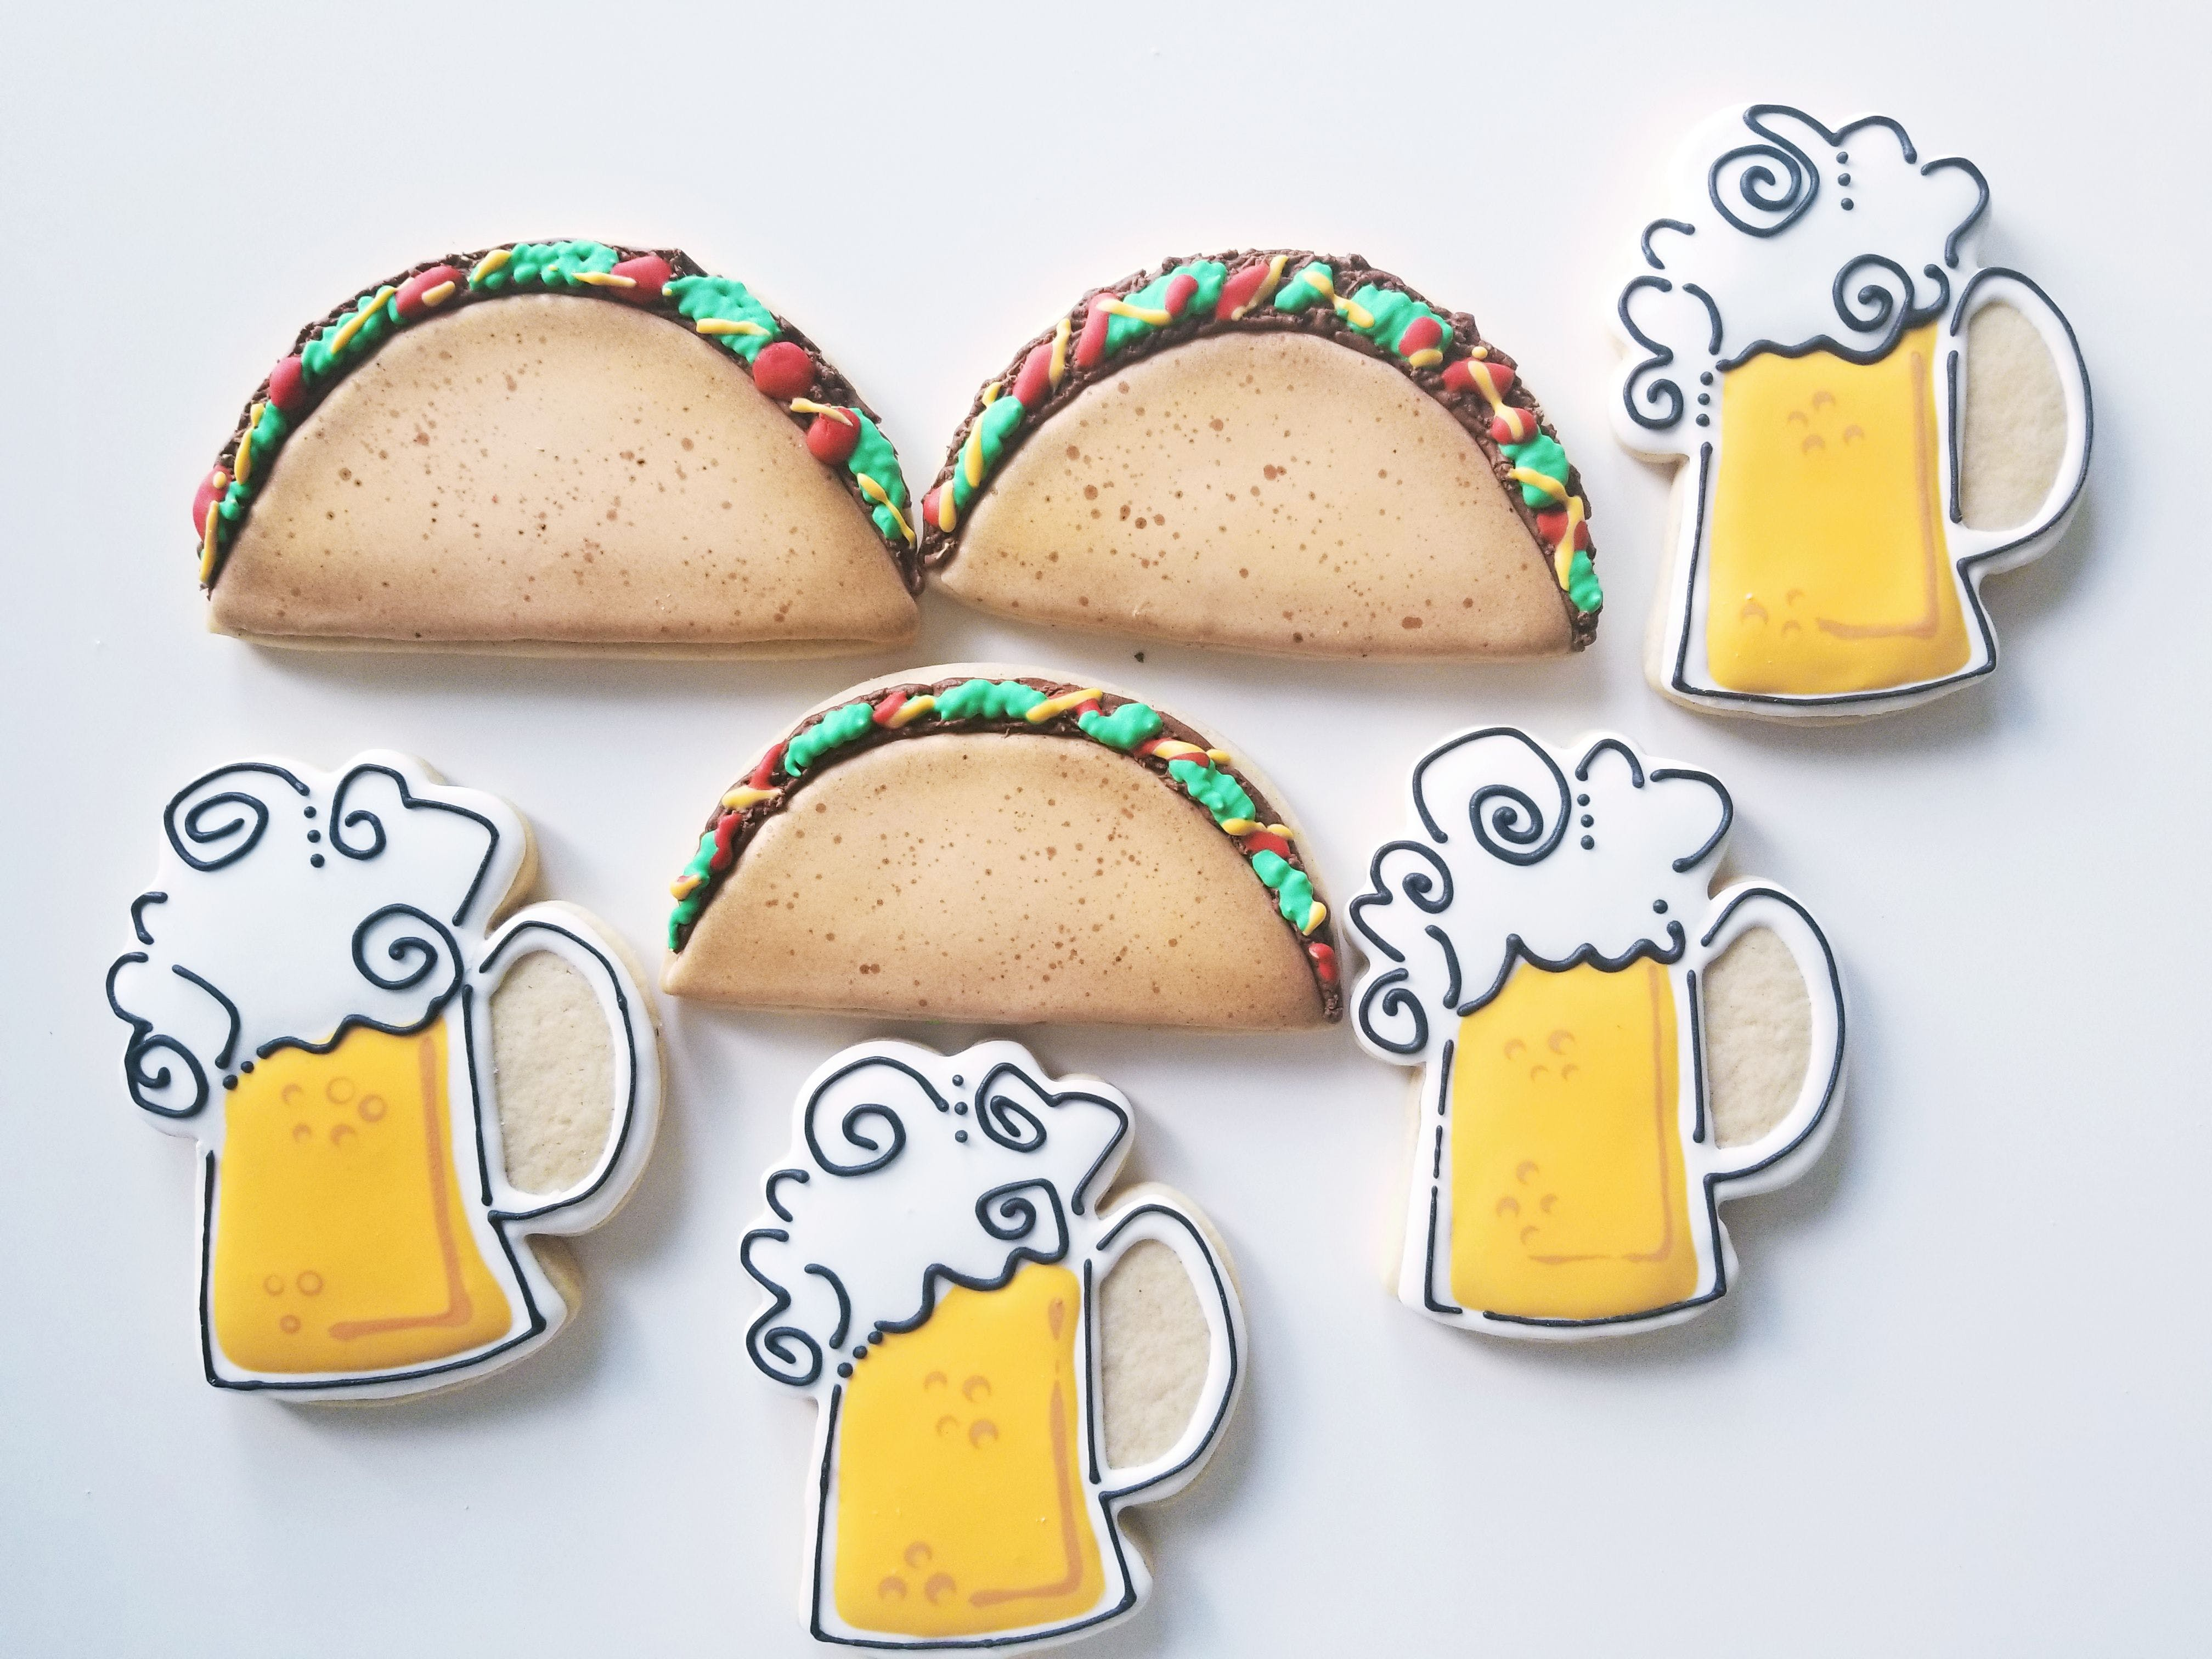 Taco and Mug With Beer Illustration